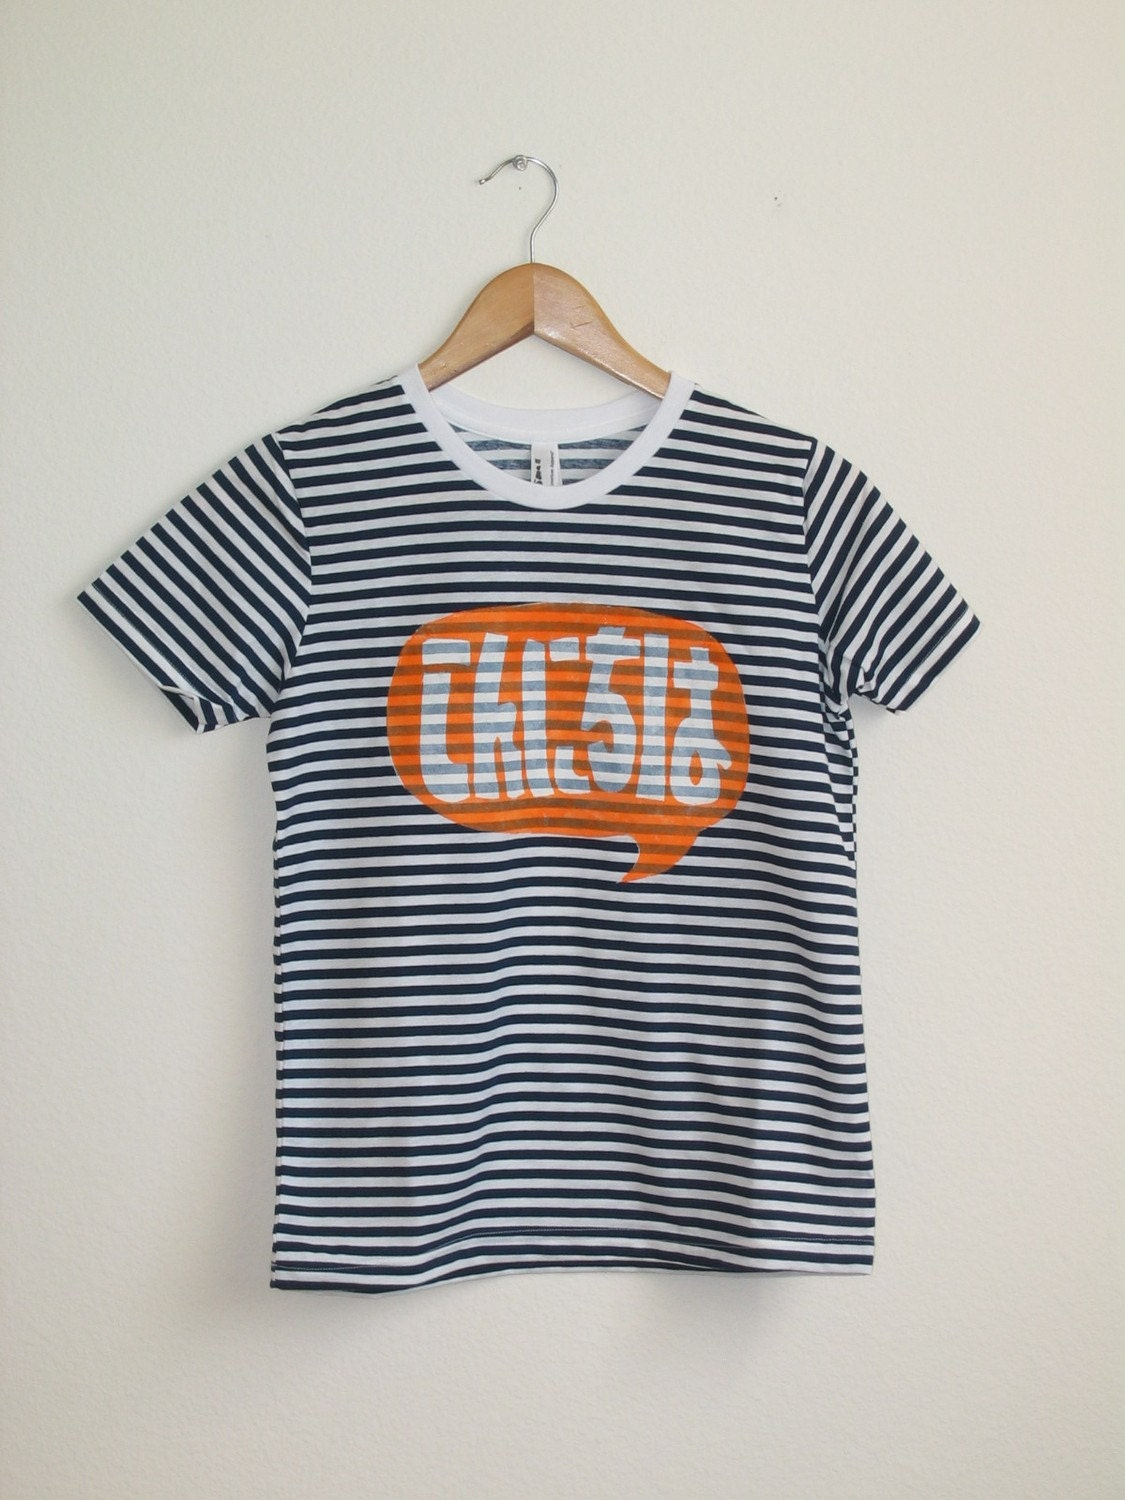 LIMITED SUPPLY Navy and White Striped Word Bubble Rolled Cuffs Hello Japanese Konnichiwa Tee